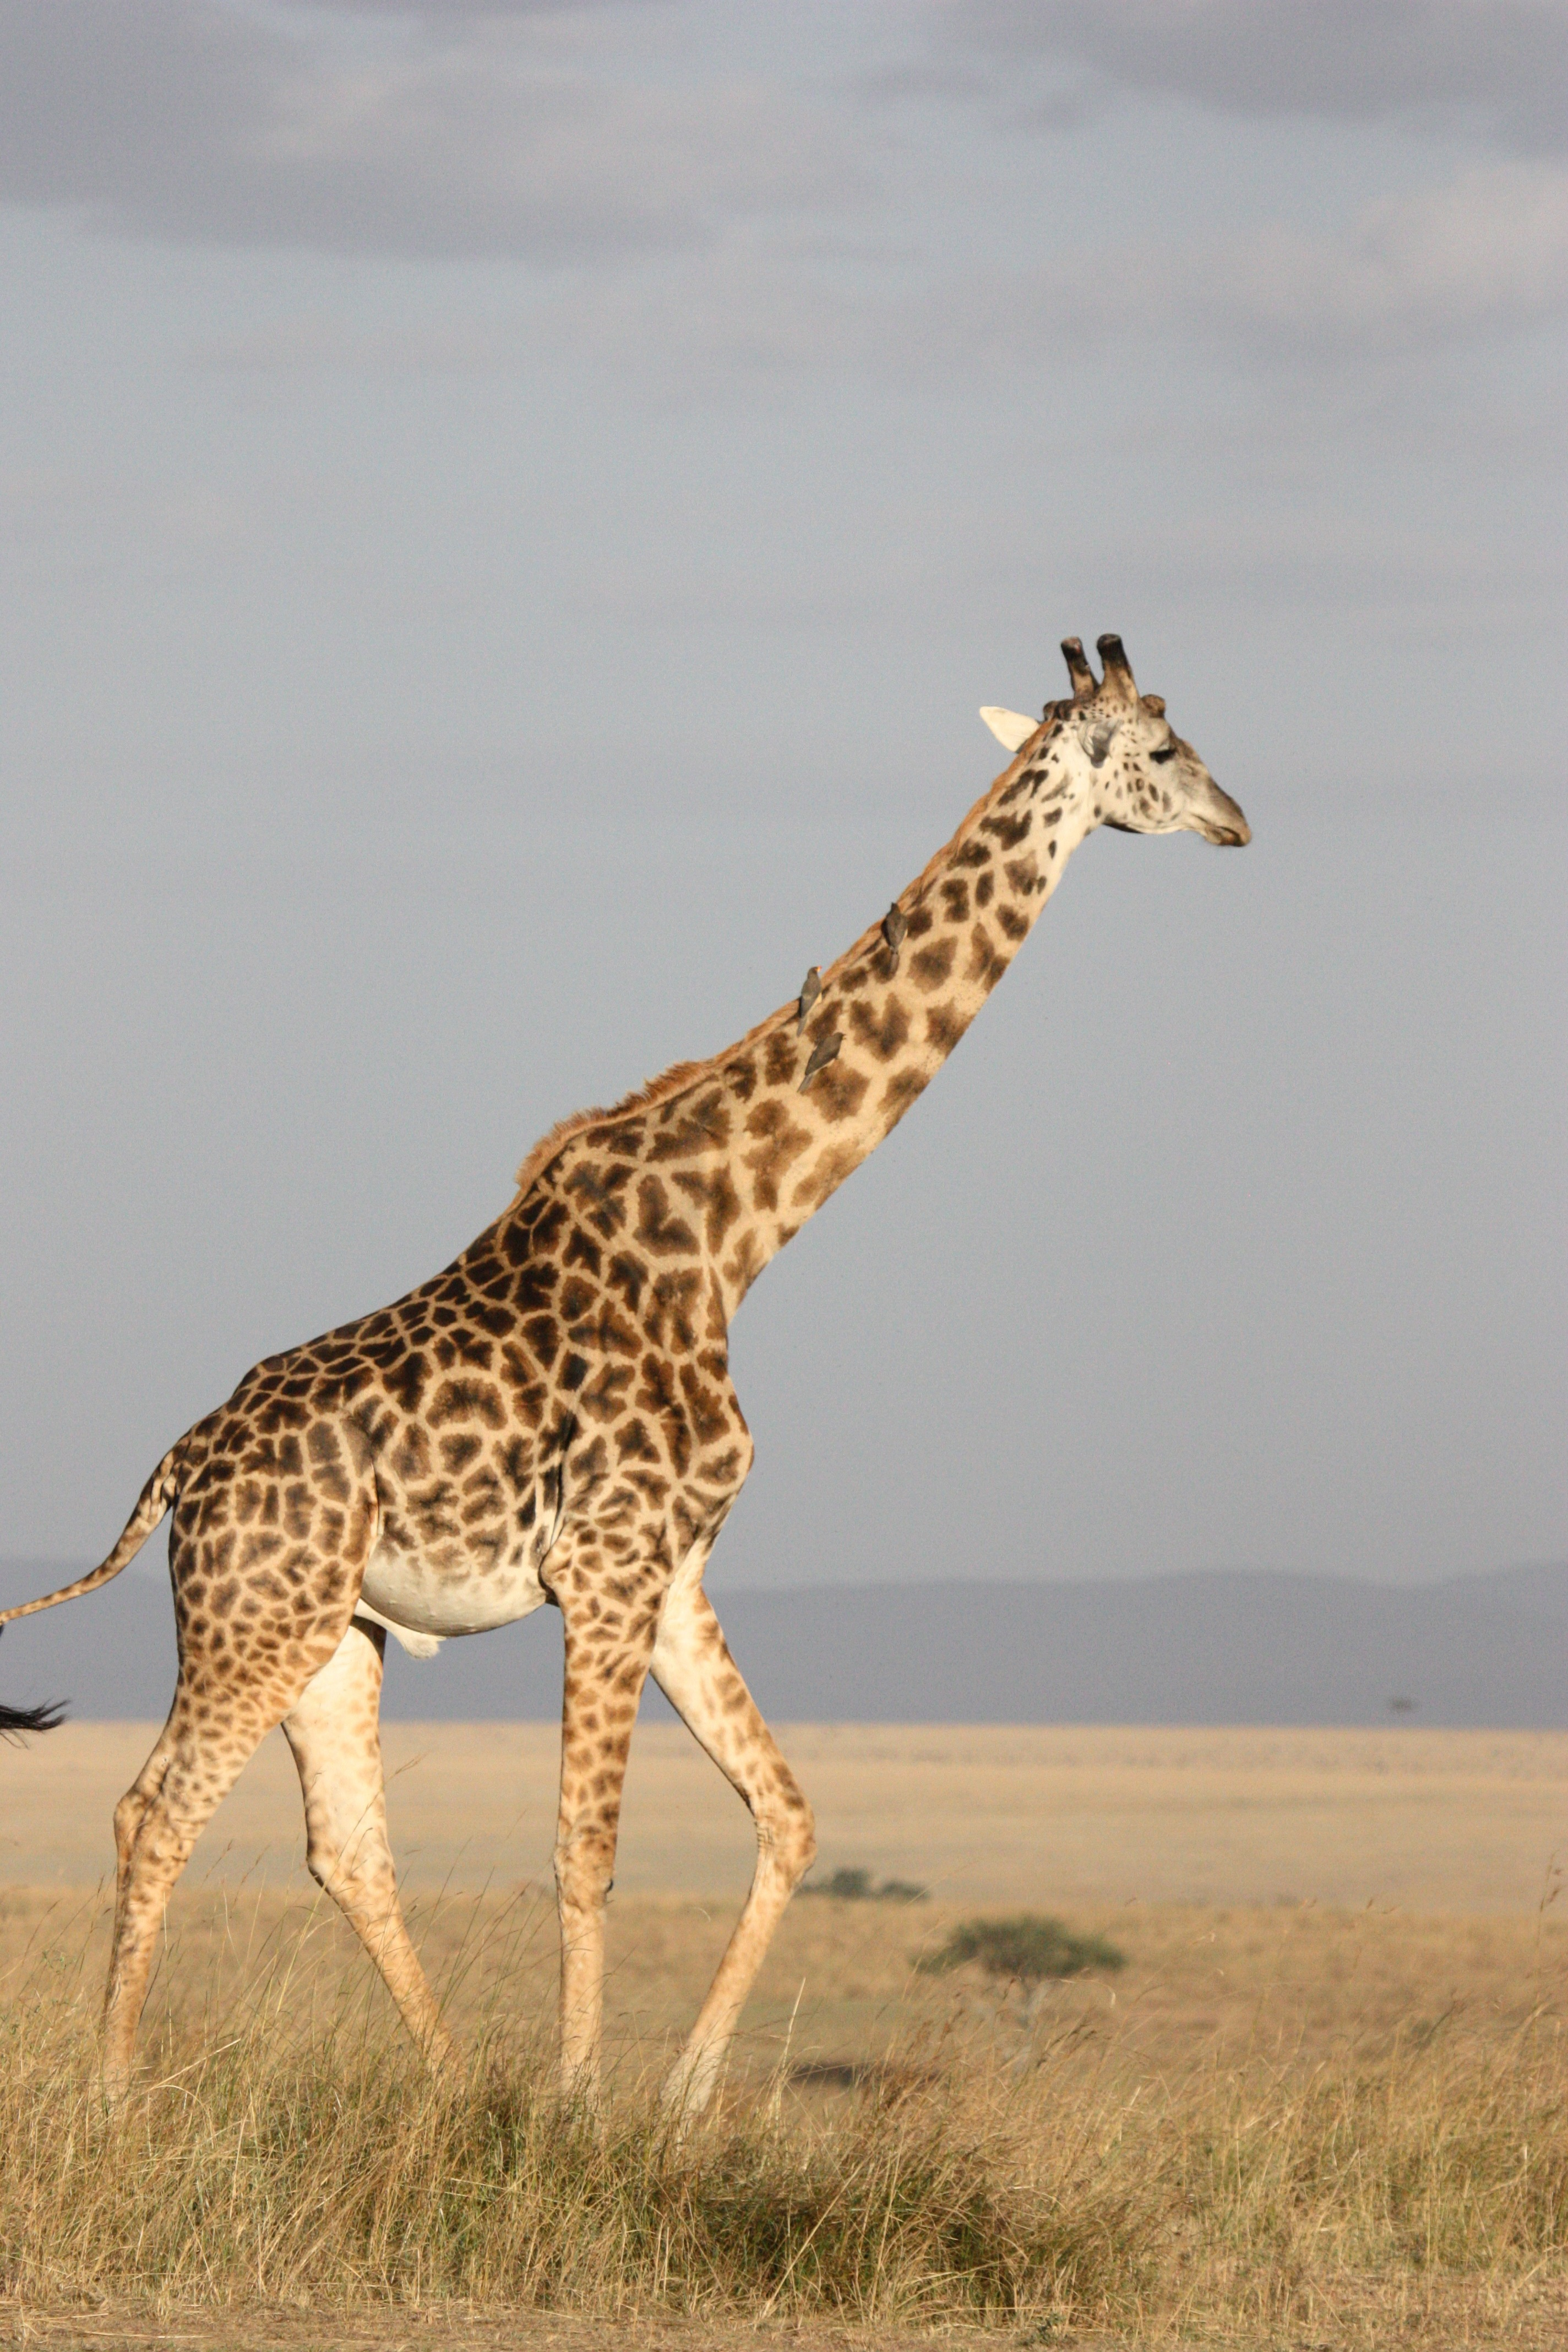 Cute Small Animals Wallpapers Brown Giraffe Walking On Brown Grass 183 Free Stock Photo